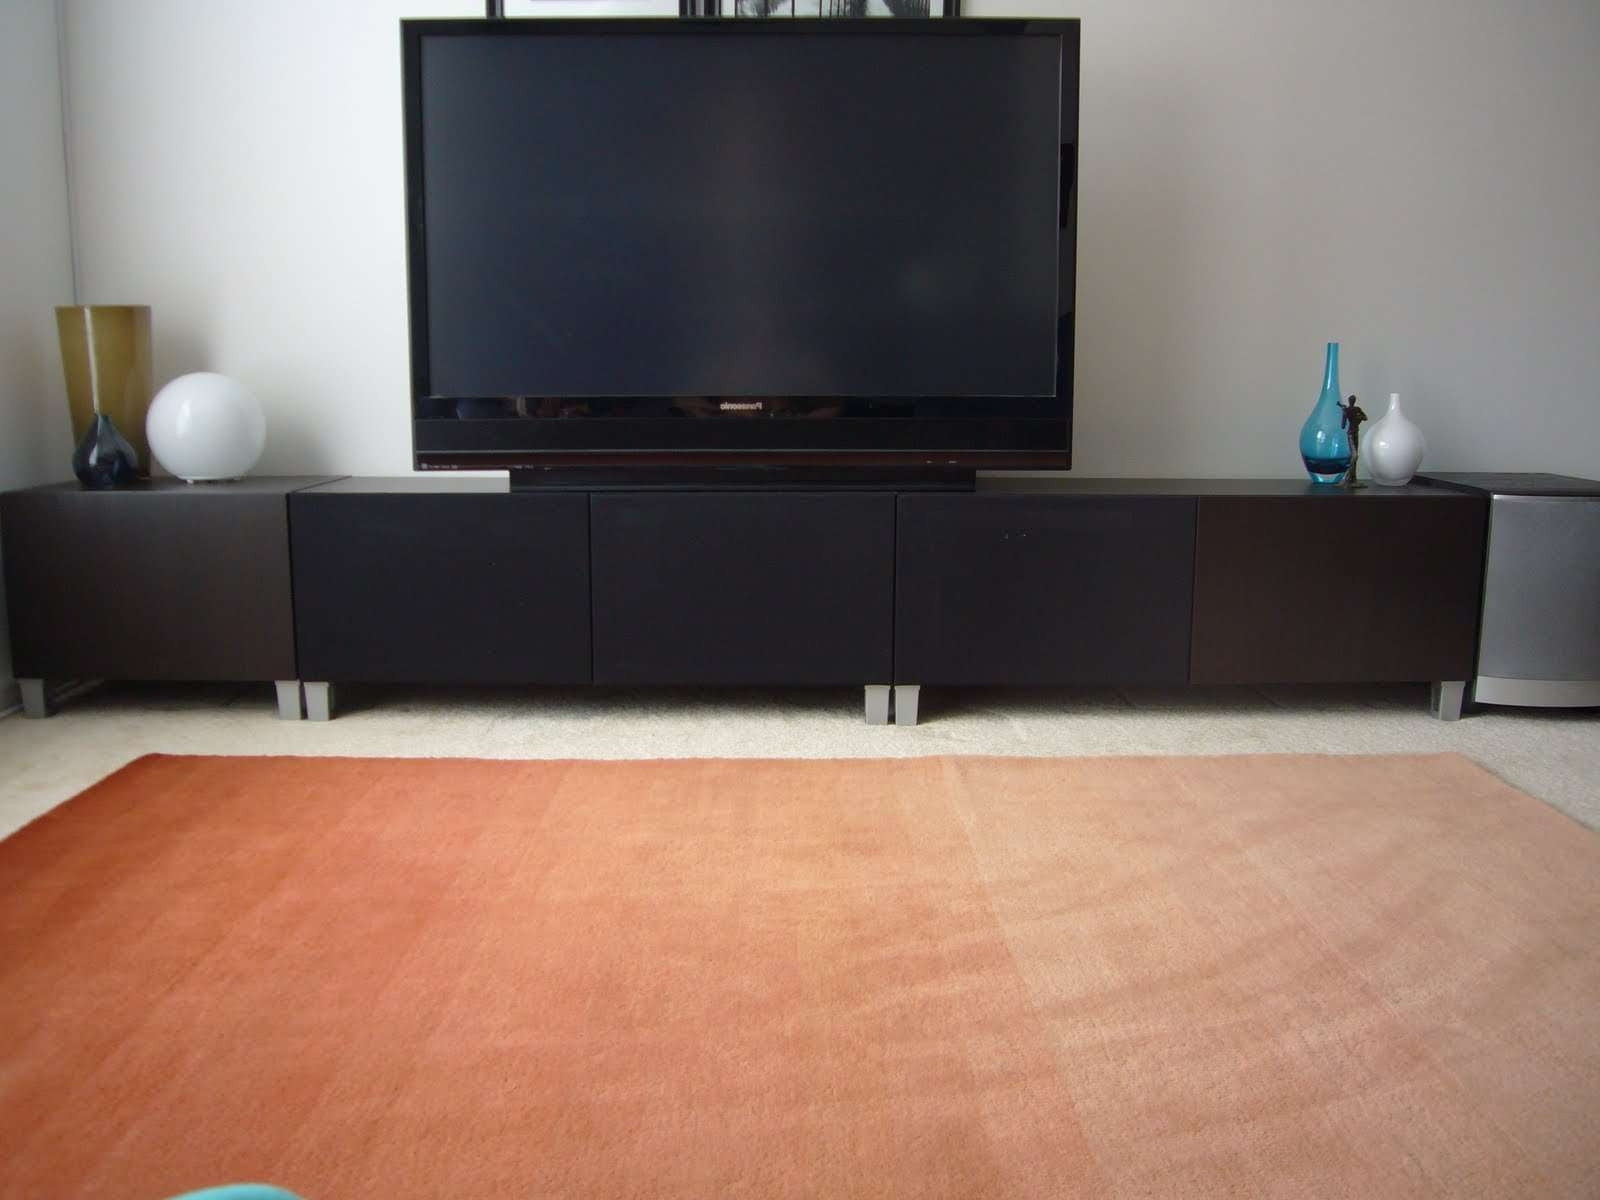 Ikea Besta Tv Stand With Black Tv O Top Long Black Wooden Cabinet Pertaining To Long Tv Stands Furniture (View 8 of 15)